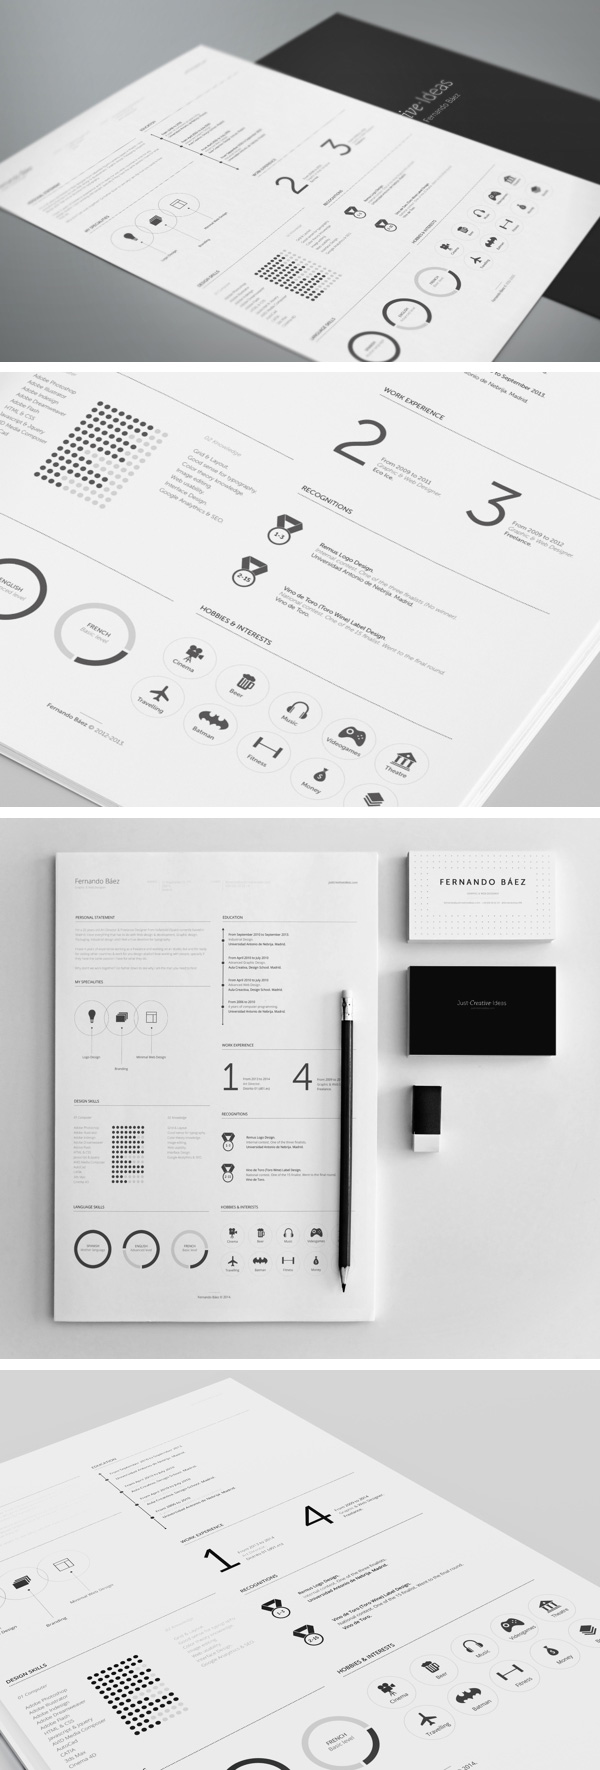 Professional Resume Template   GraphicBurger Professional Resume Template